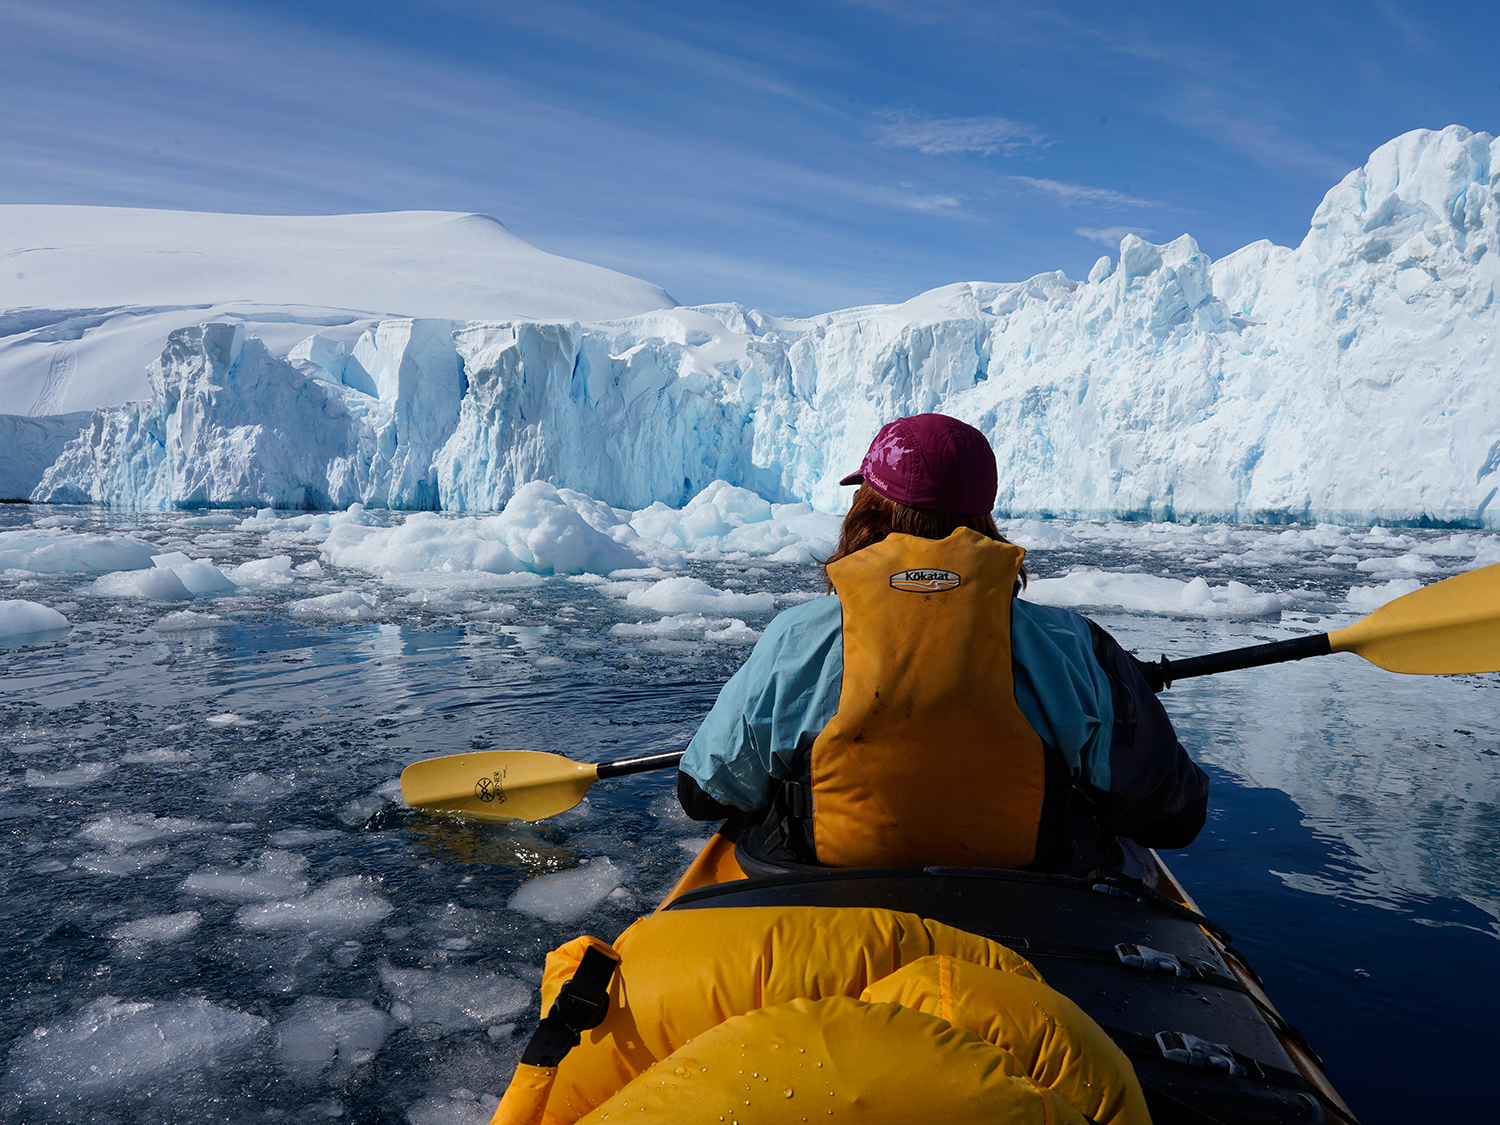 Sea kayaking amid ice and seracs. Photo by Ralf Dujmovits.